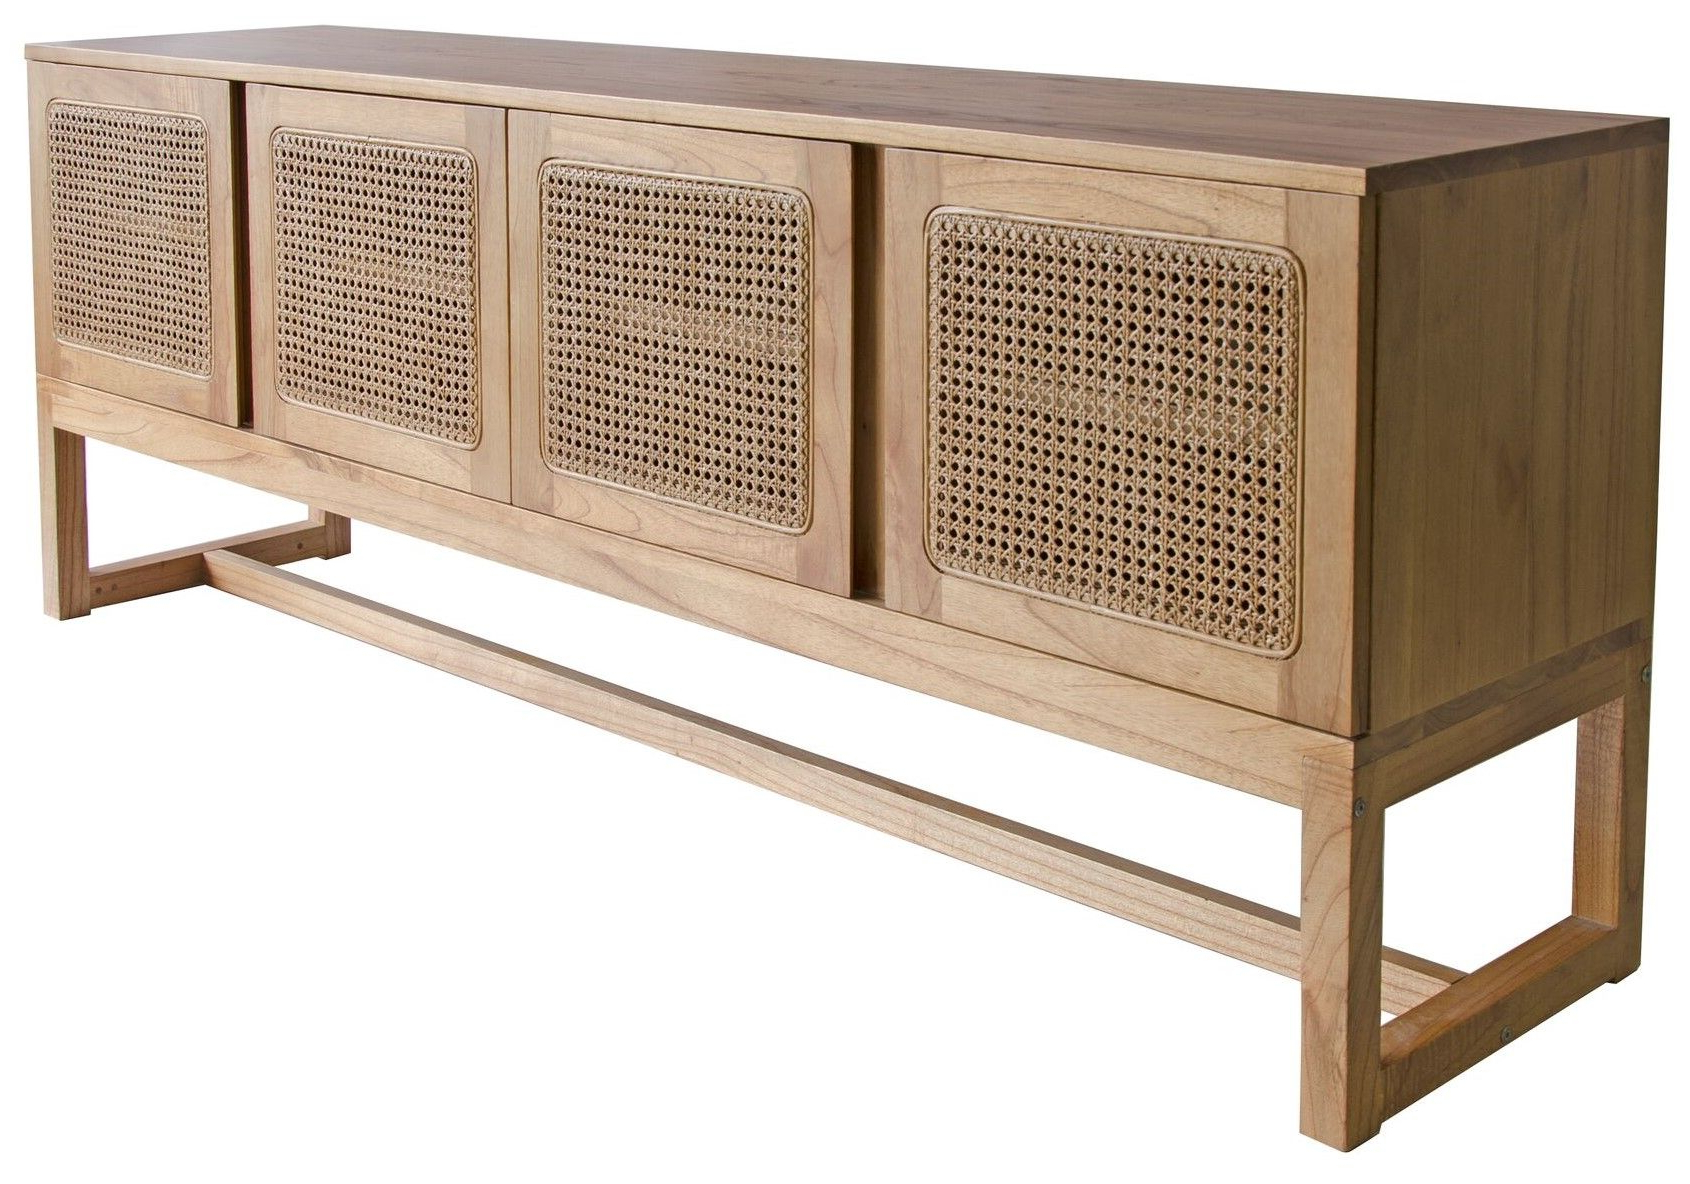 Sideboards : Jordan Sideboard | 中建 In 2019 | Sideboard Throughout Perez Sideboards (View 12 of 20)